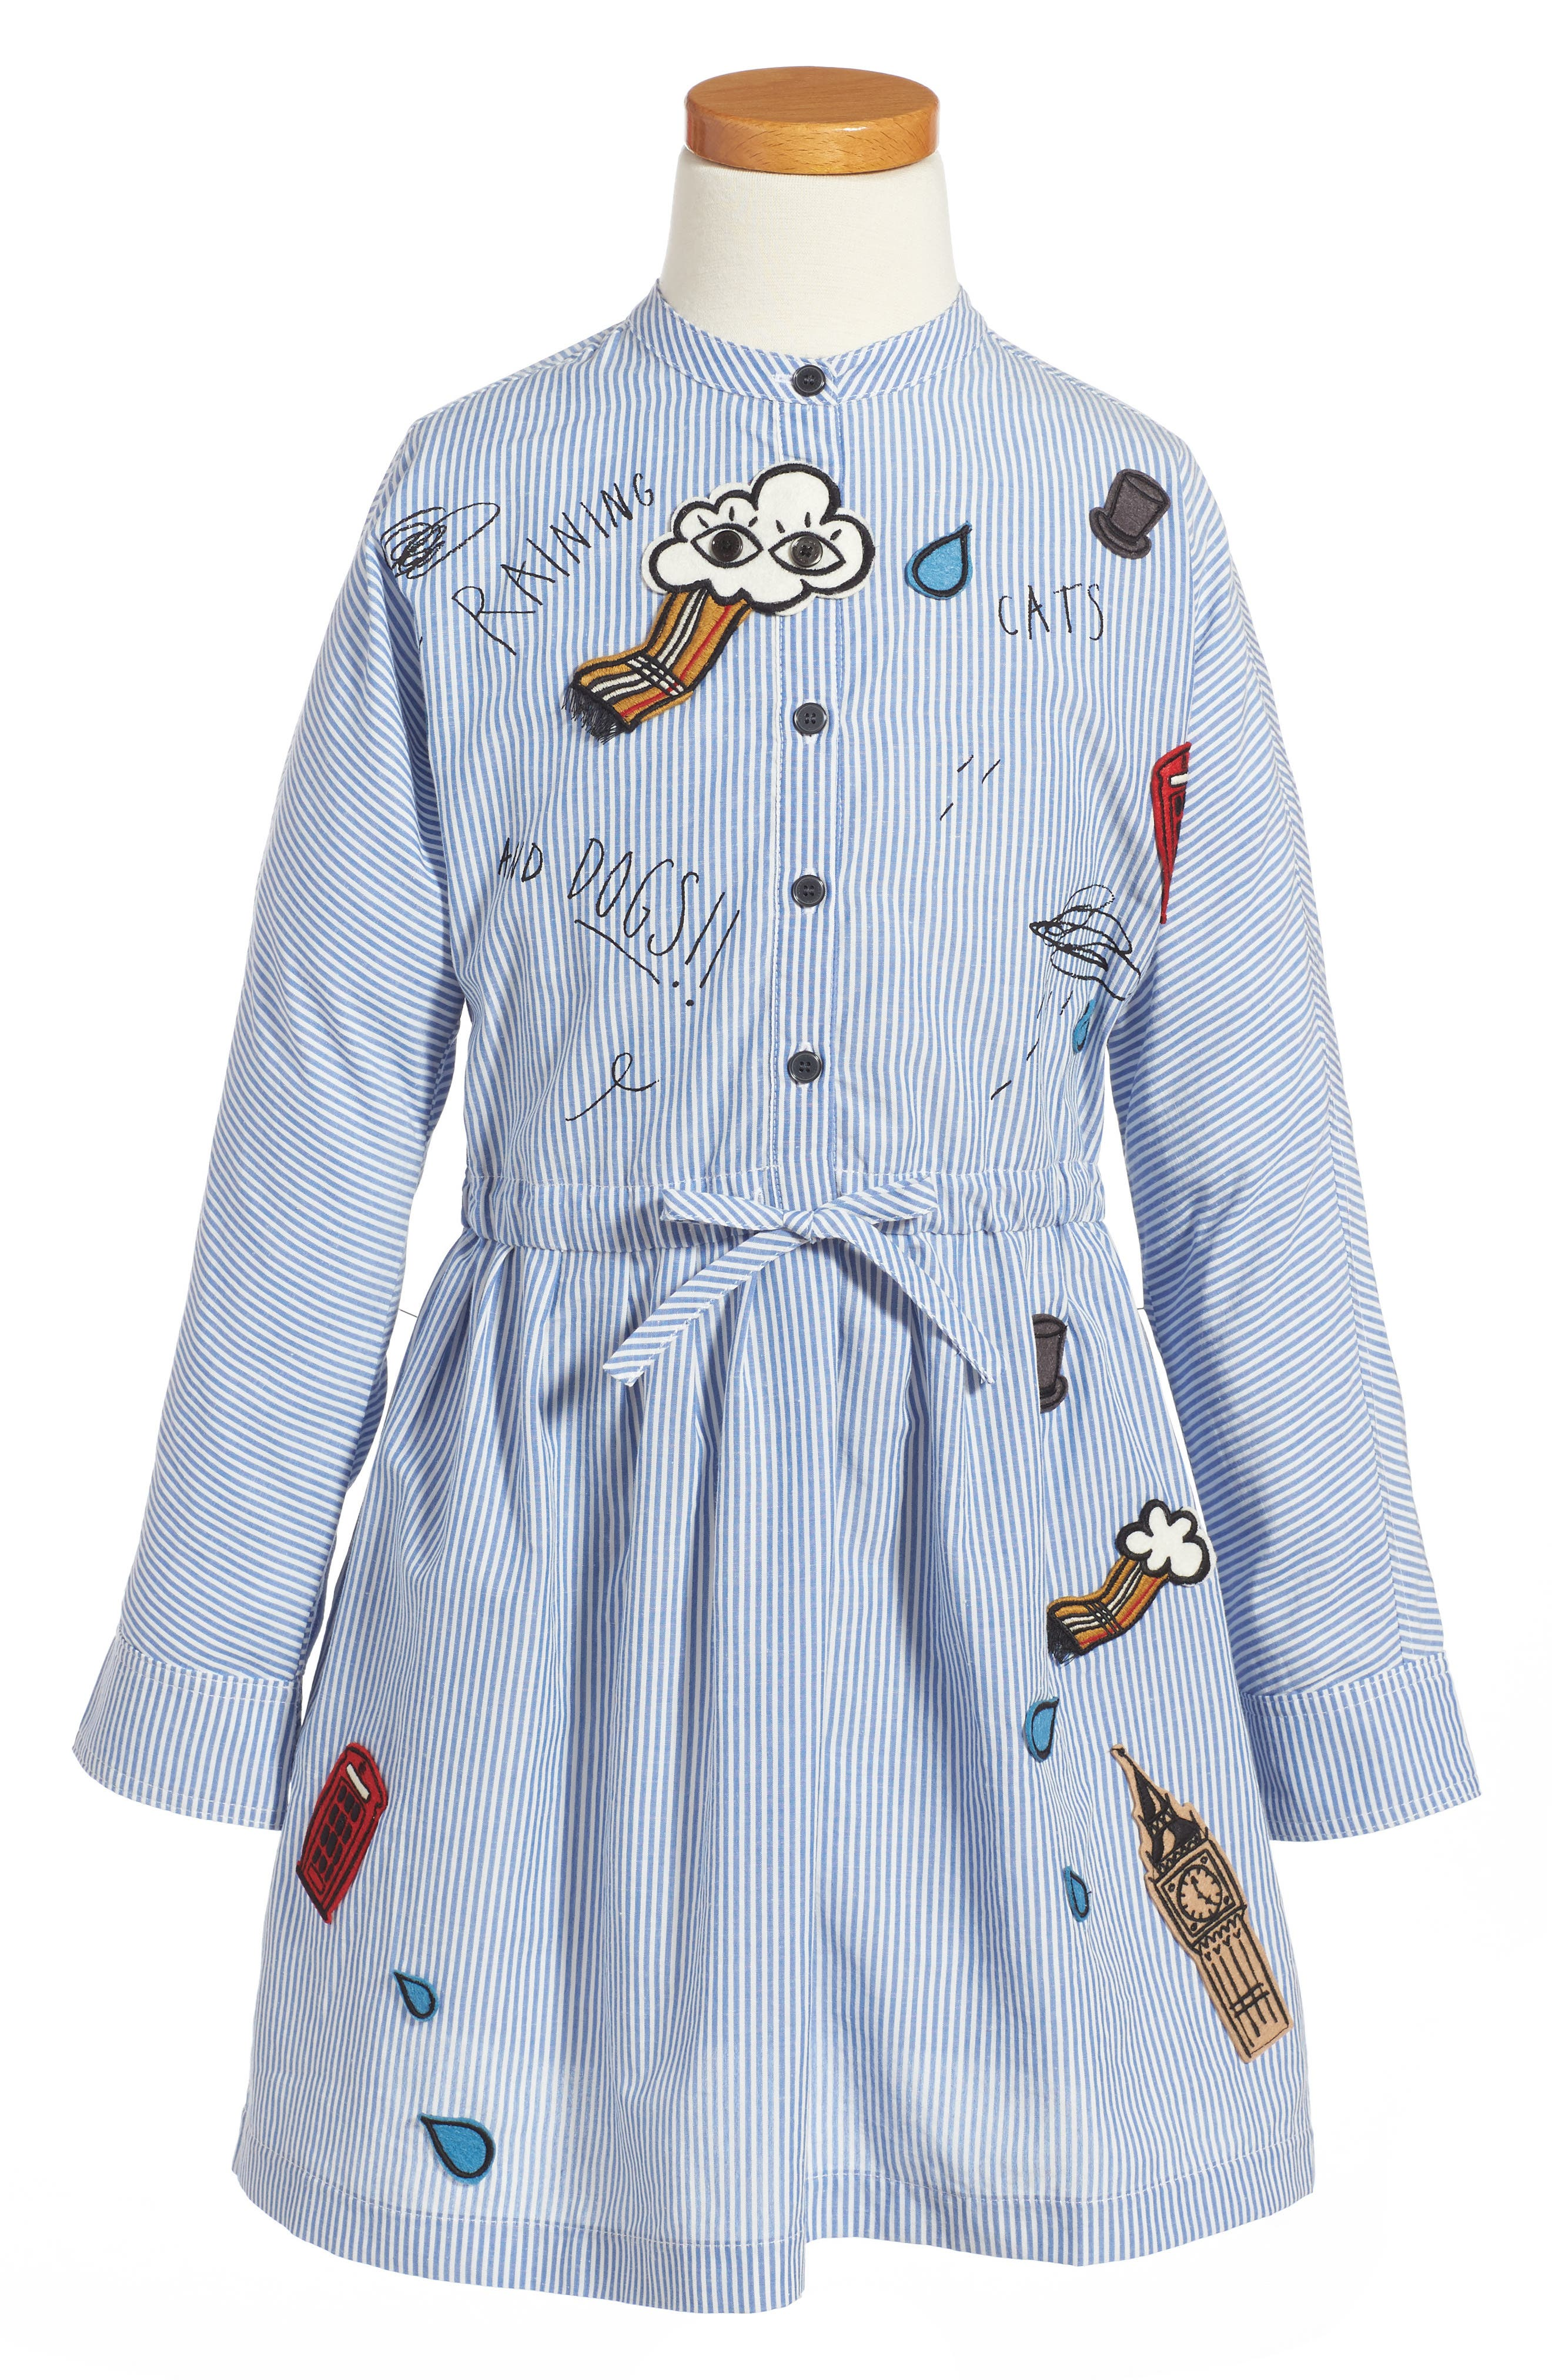 Alternate Image 1 Selected - Burberry Cristy Patch Dress (Little Girls & Big Girls)